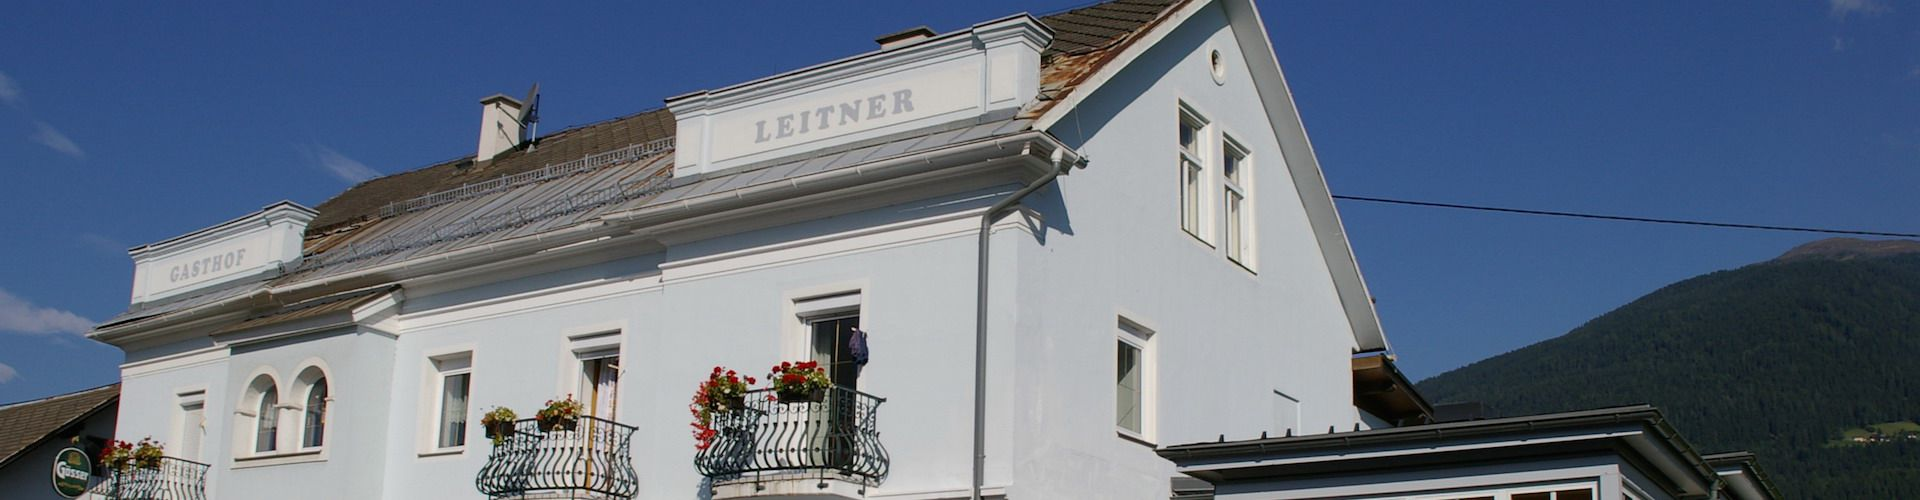 Pension Leitner